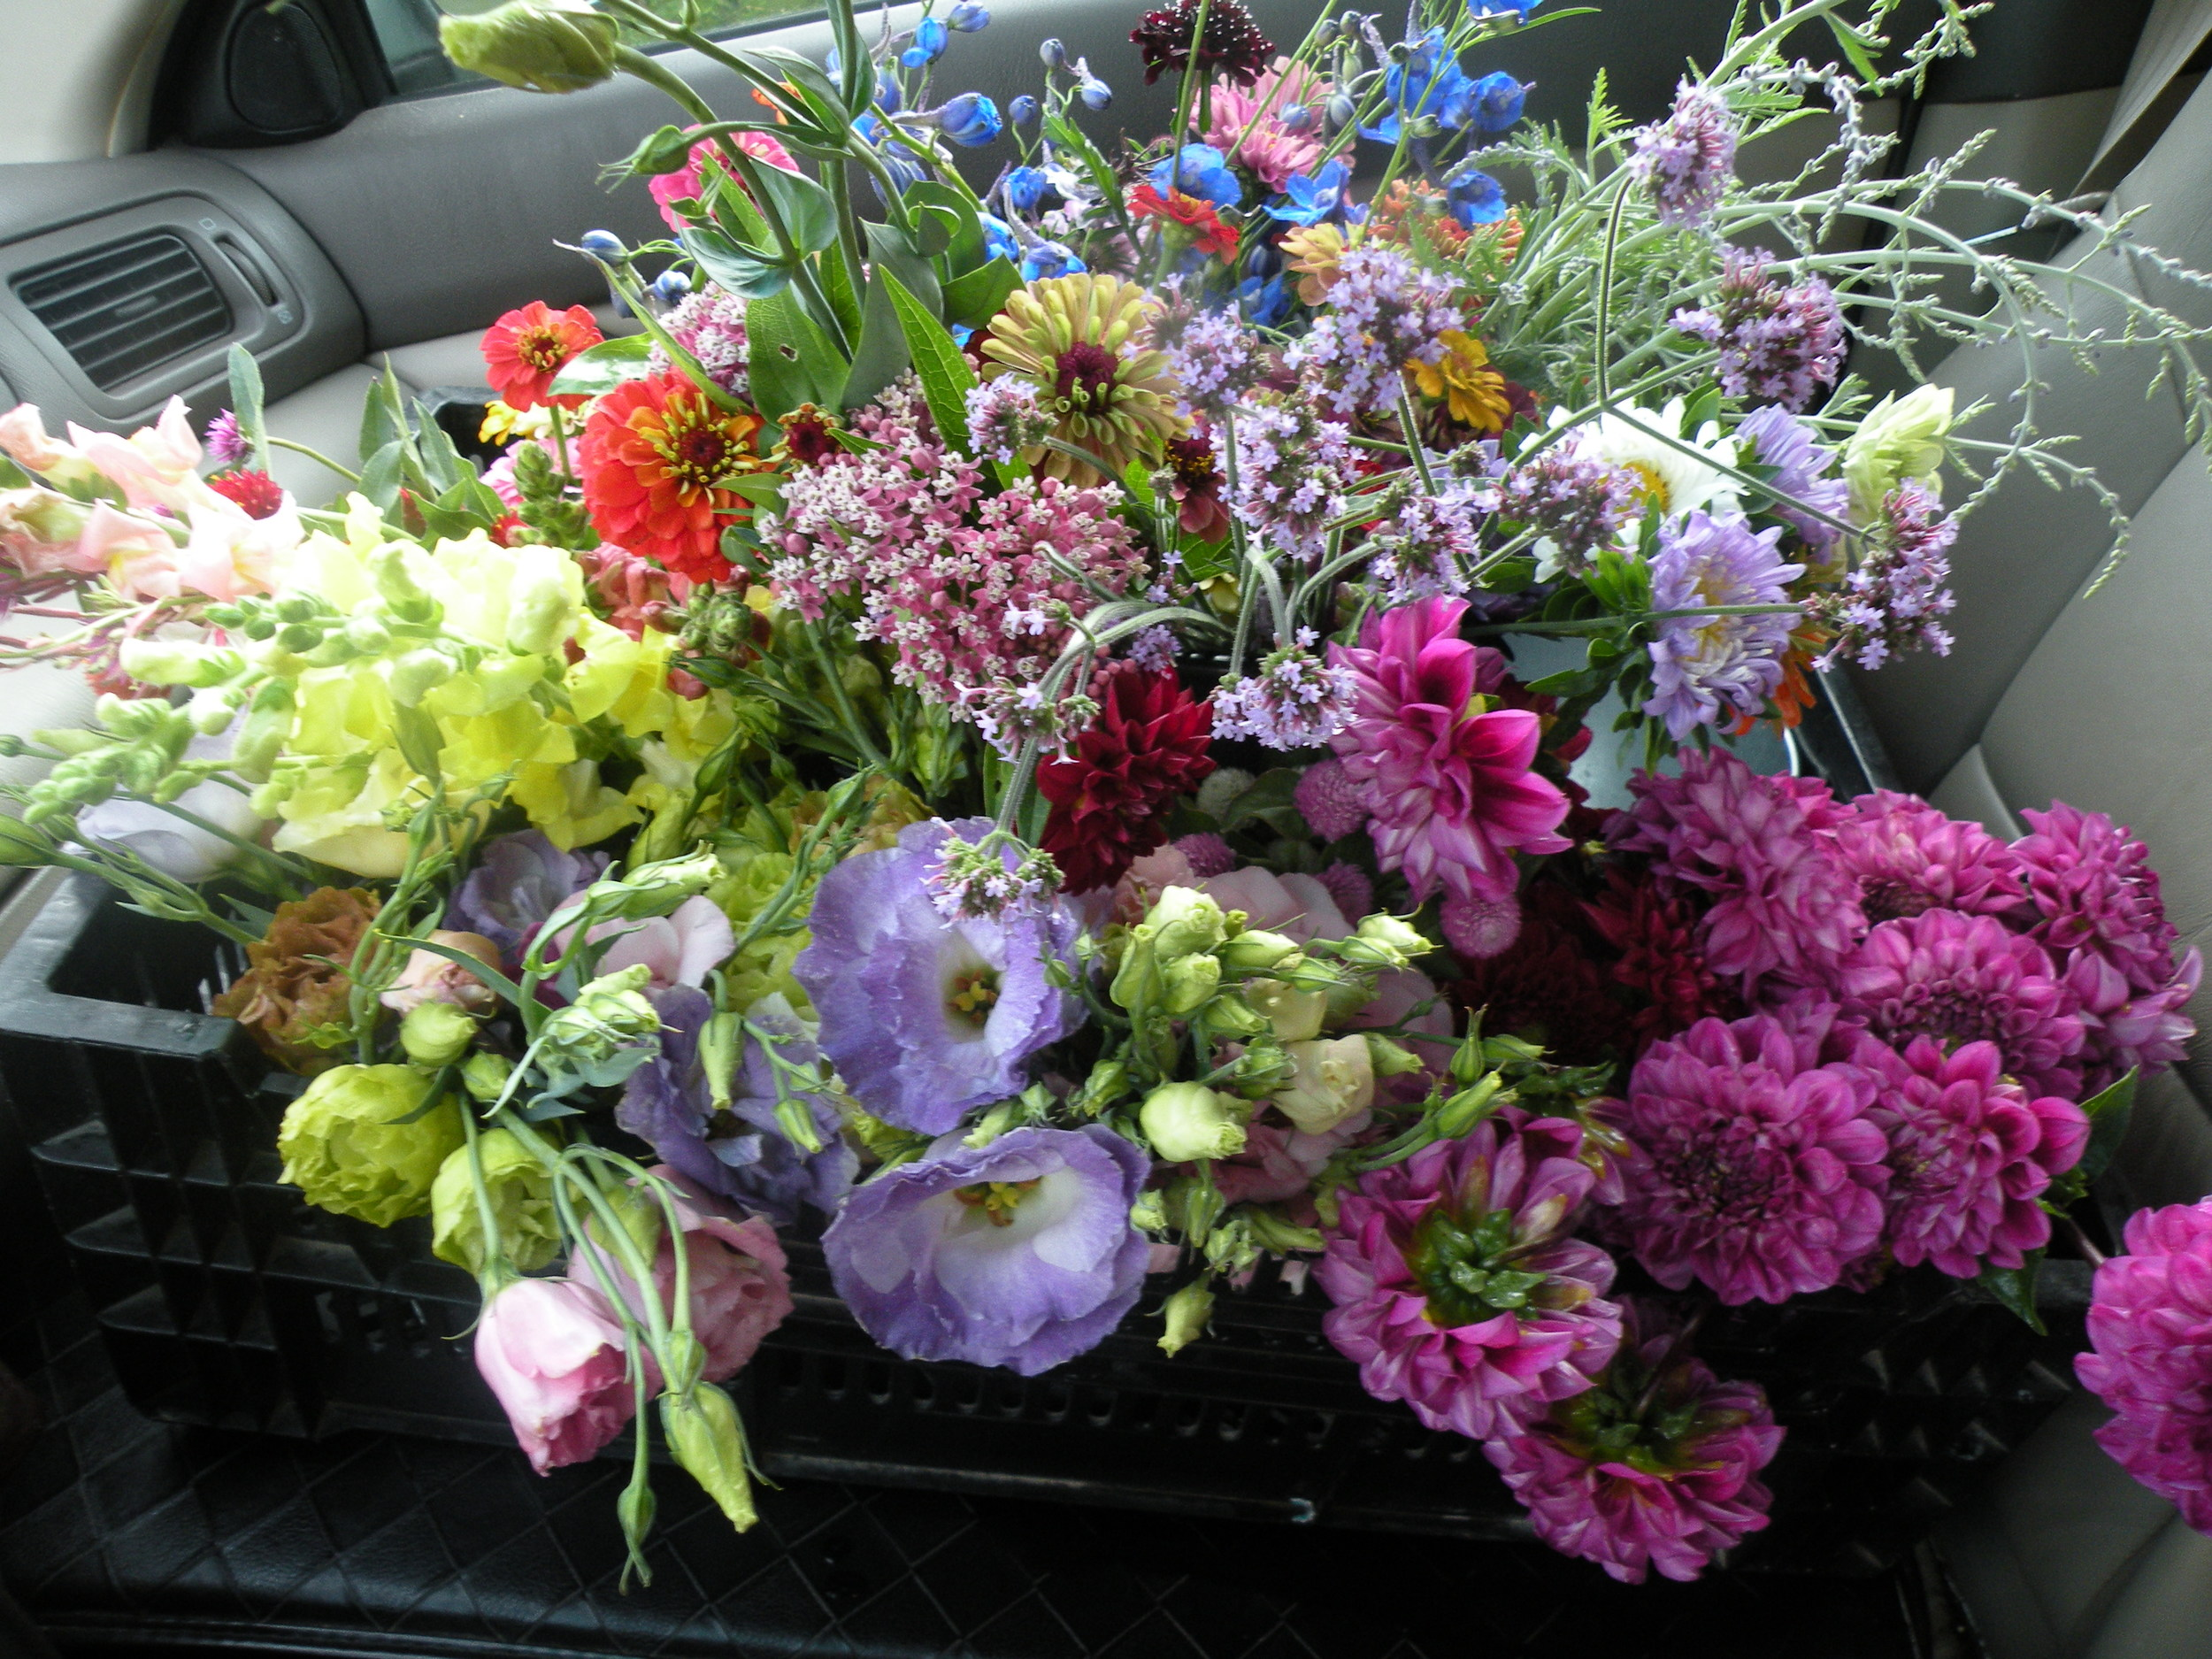 Flowers loaded up and ready for transport. Thank you to Laura and Orange Cat Farm for helping with transportation detail. Photo by Erin Schneider